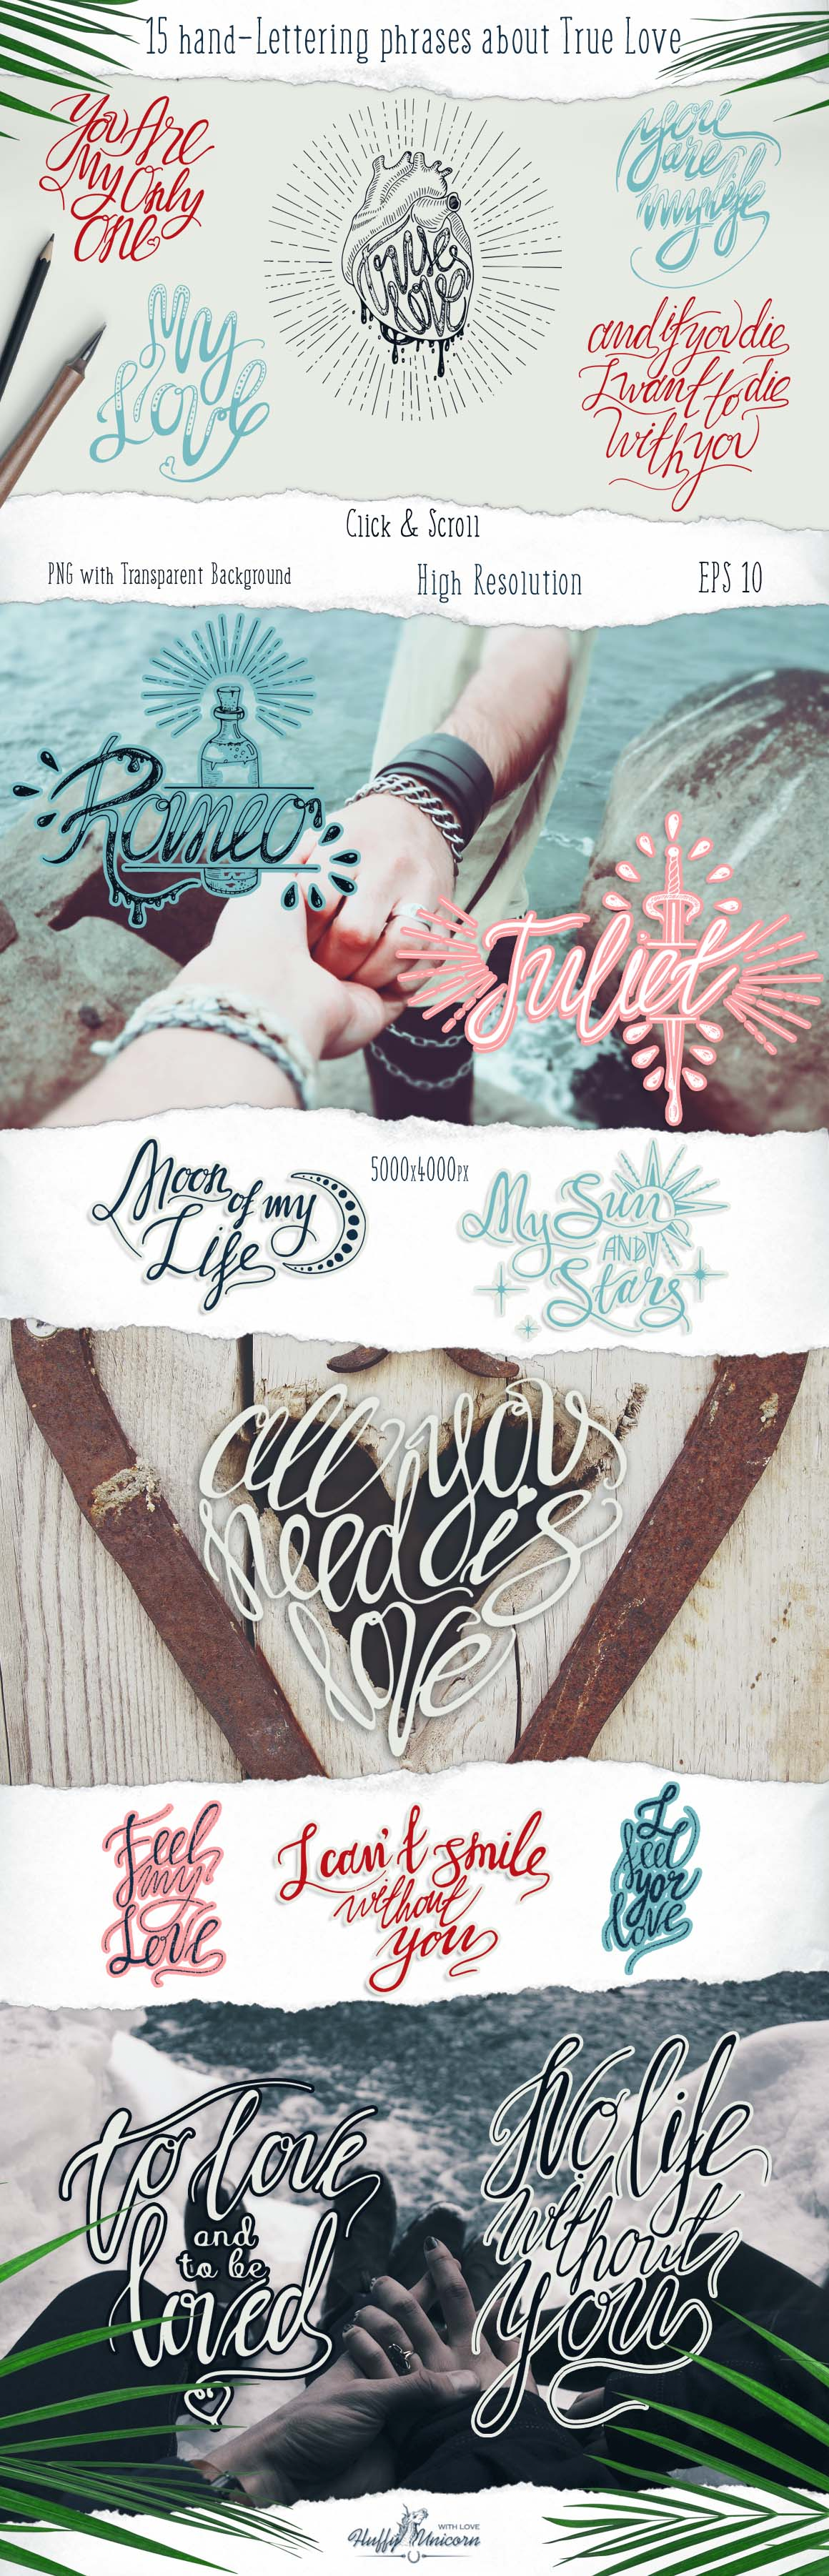 True Love Hand Lettering Set example image 8